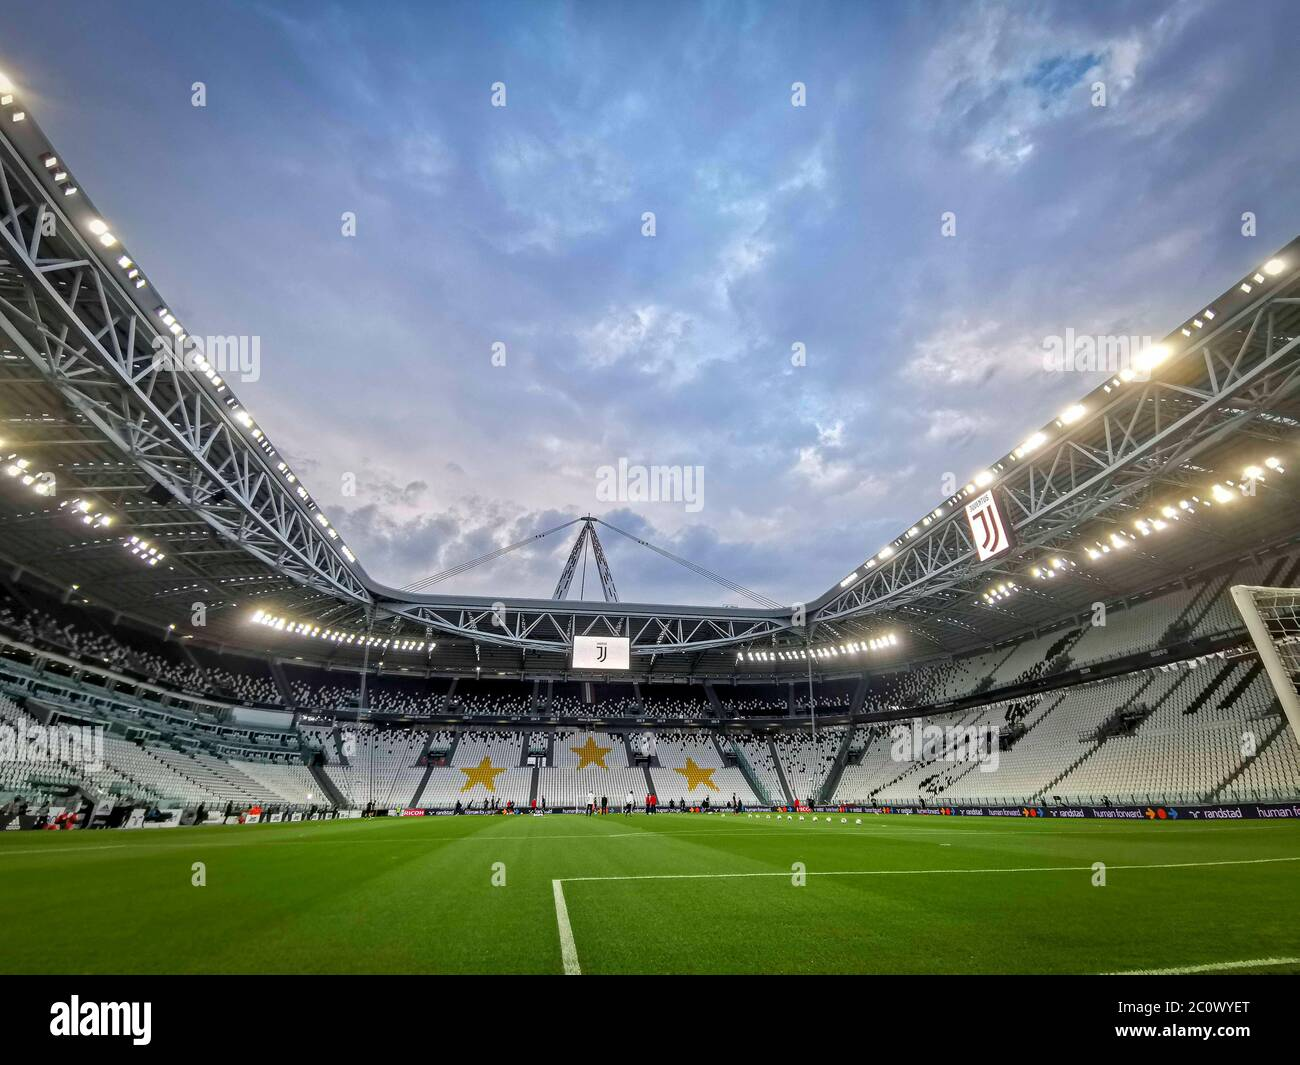 turin italy 12th june 2020 turin juventus milan italian cup 2019 2020 at juventus stadium behind https www alamy com turin italy 12th june 2020 turin juventus milan italian cup 20192020 at juventus stadium behind closed doors for the covid emergency 2019 in the picture credit independent photo agencyalamy live news image361988112 html